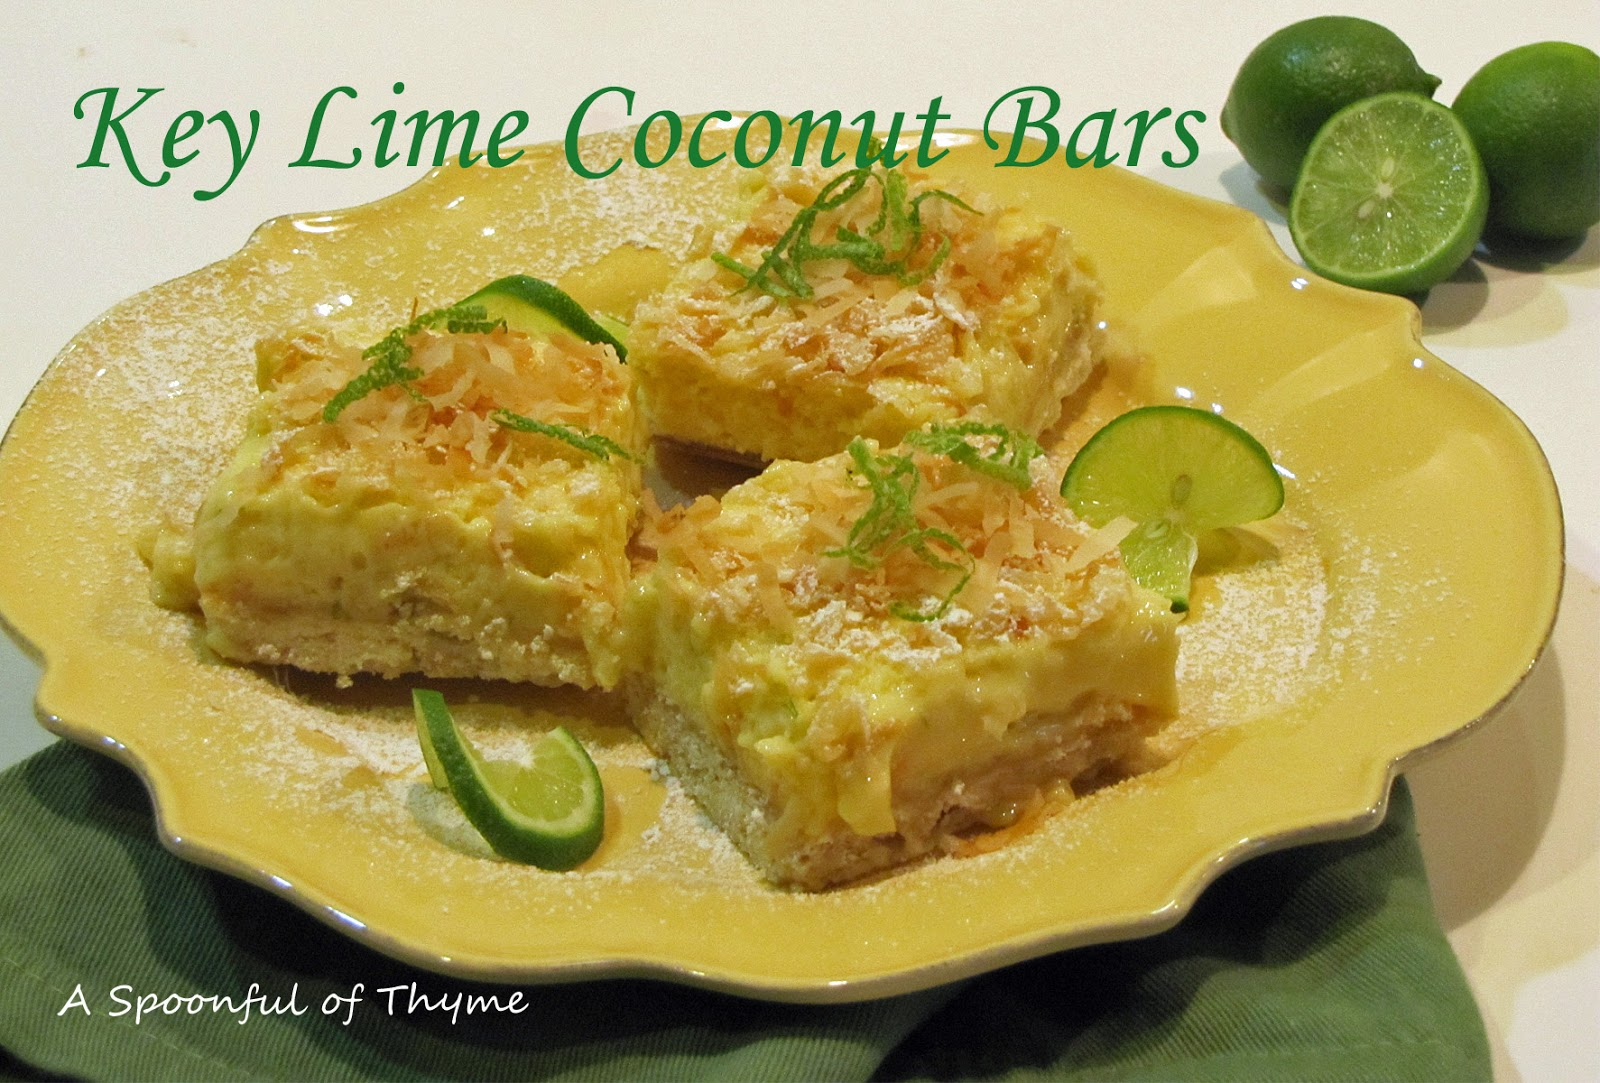 Spoonful of Thyme: Key Lime Coconut Bars